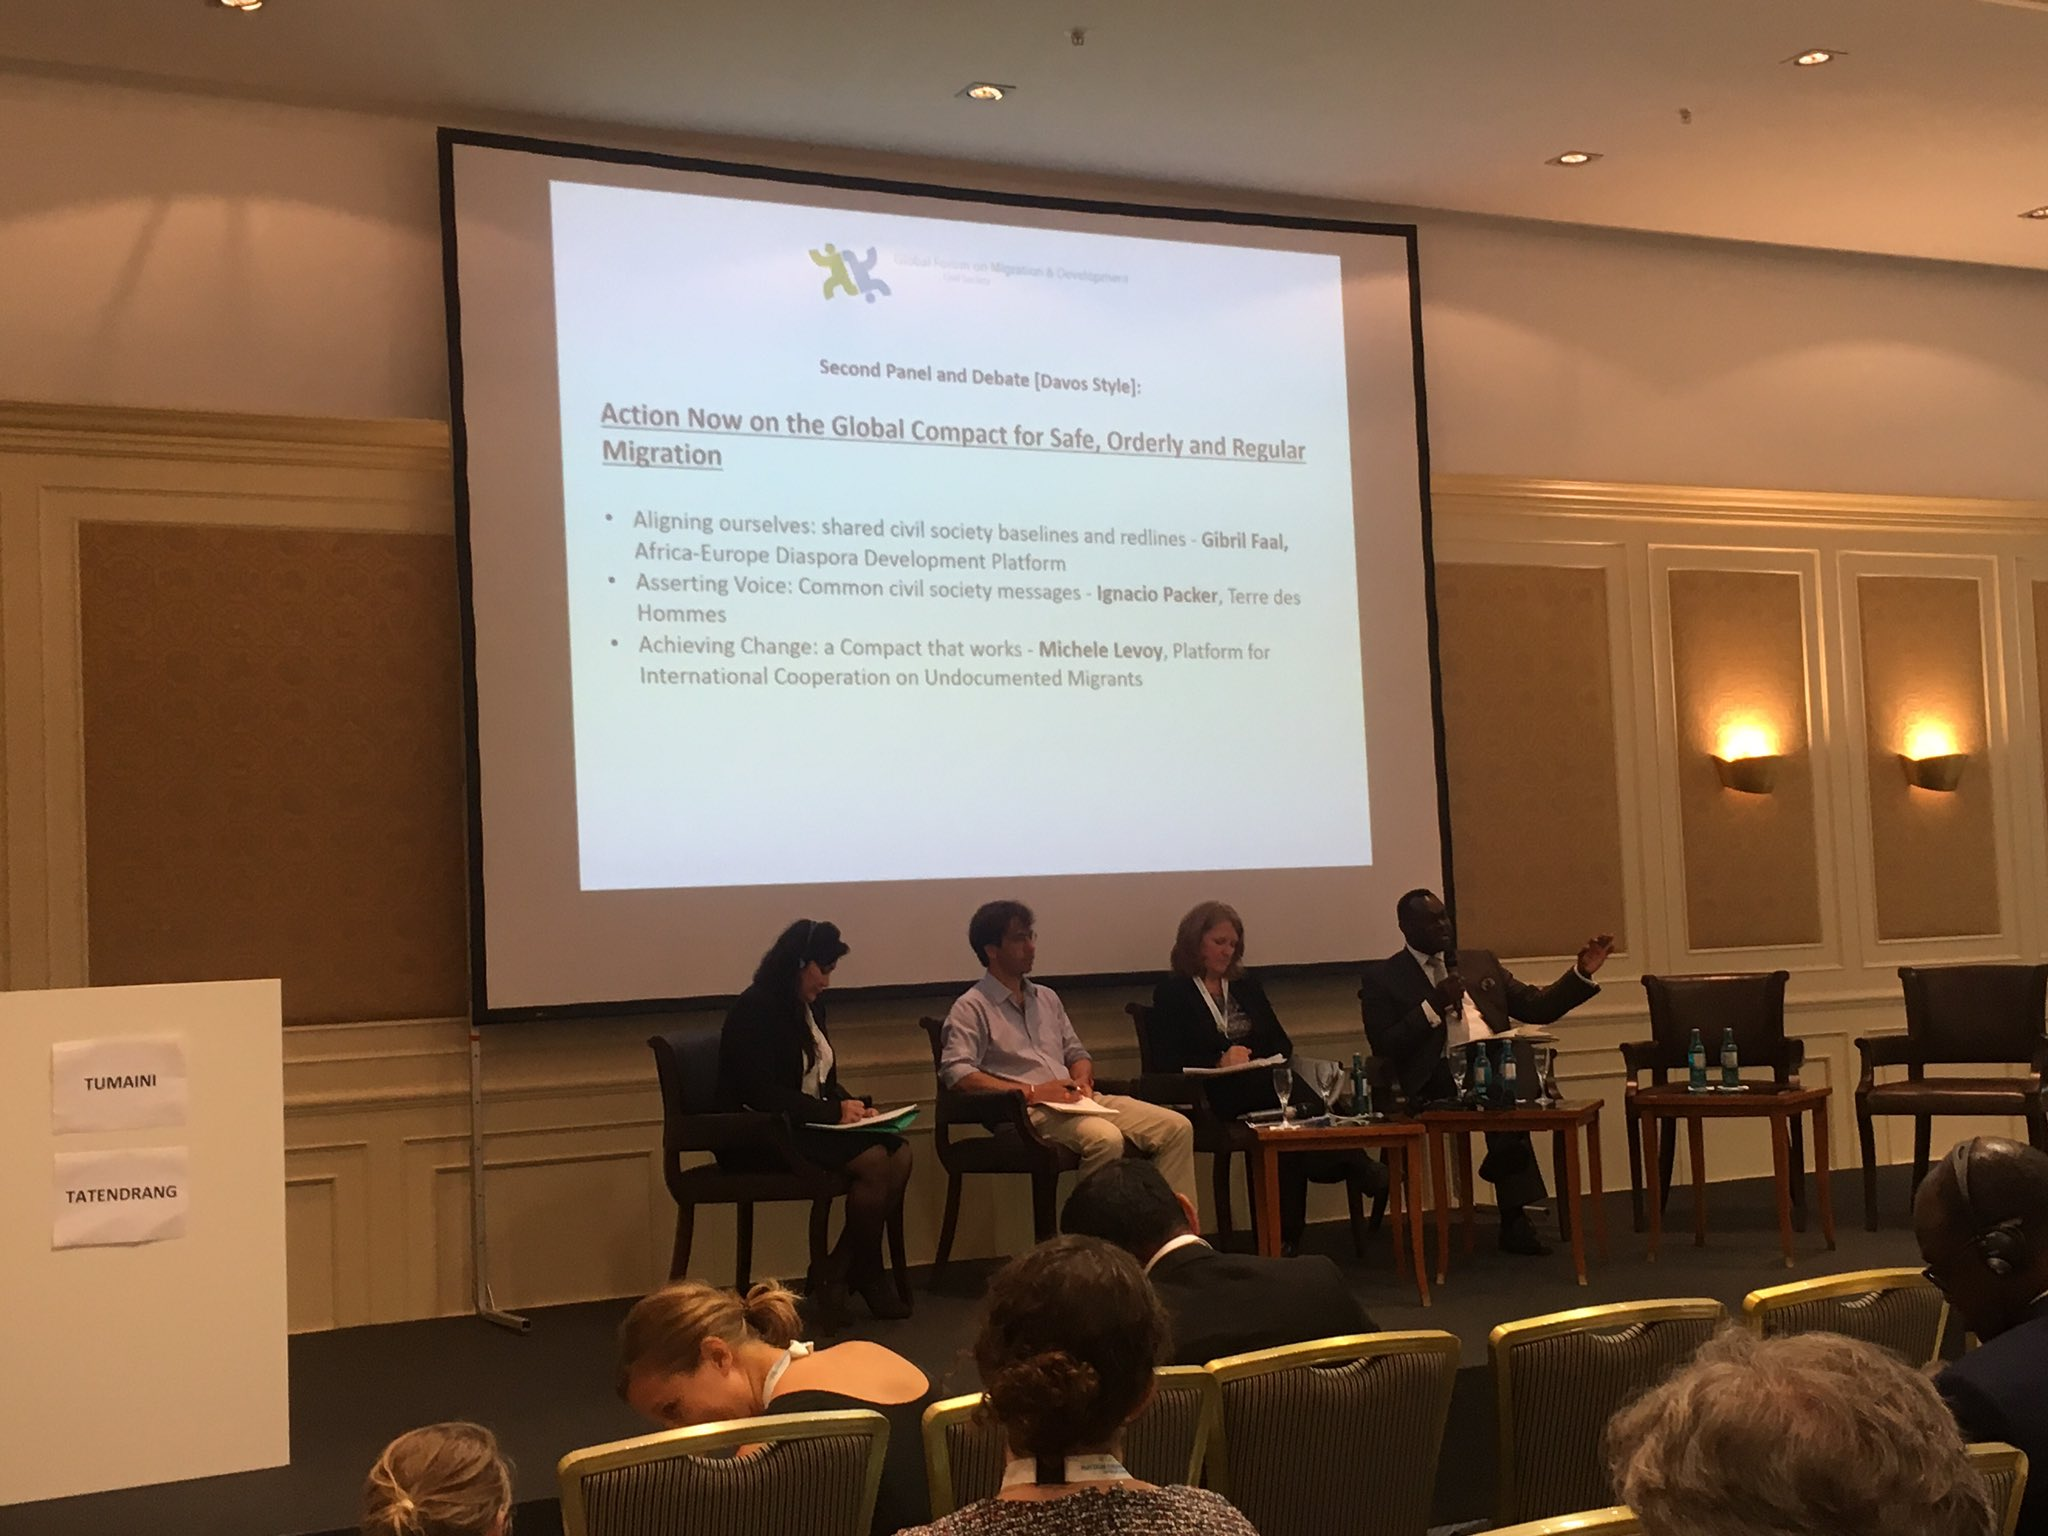 Gibril Faal: 4 principles for the global compact: firewalls, regularization, transnationality & no criminalization of solidarity #gfmd_csd https://t.co/kUgszLzoTe